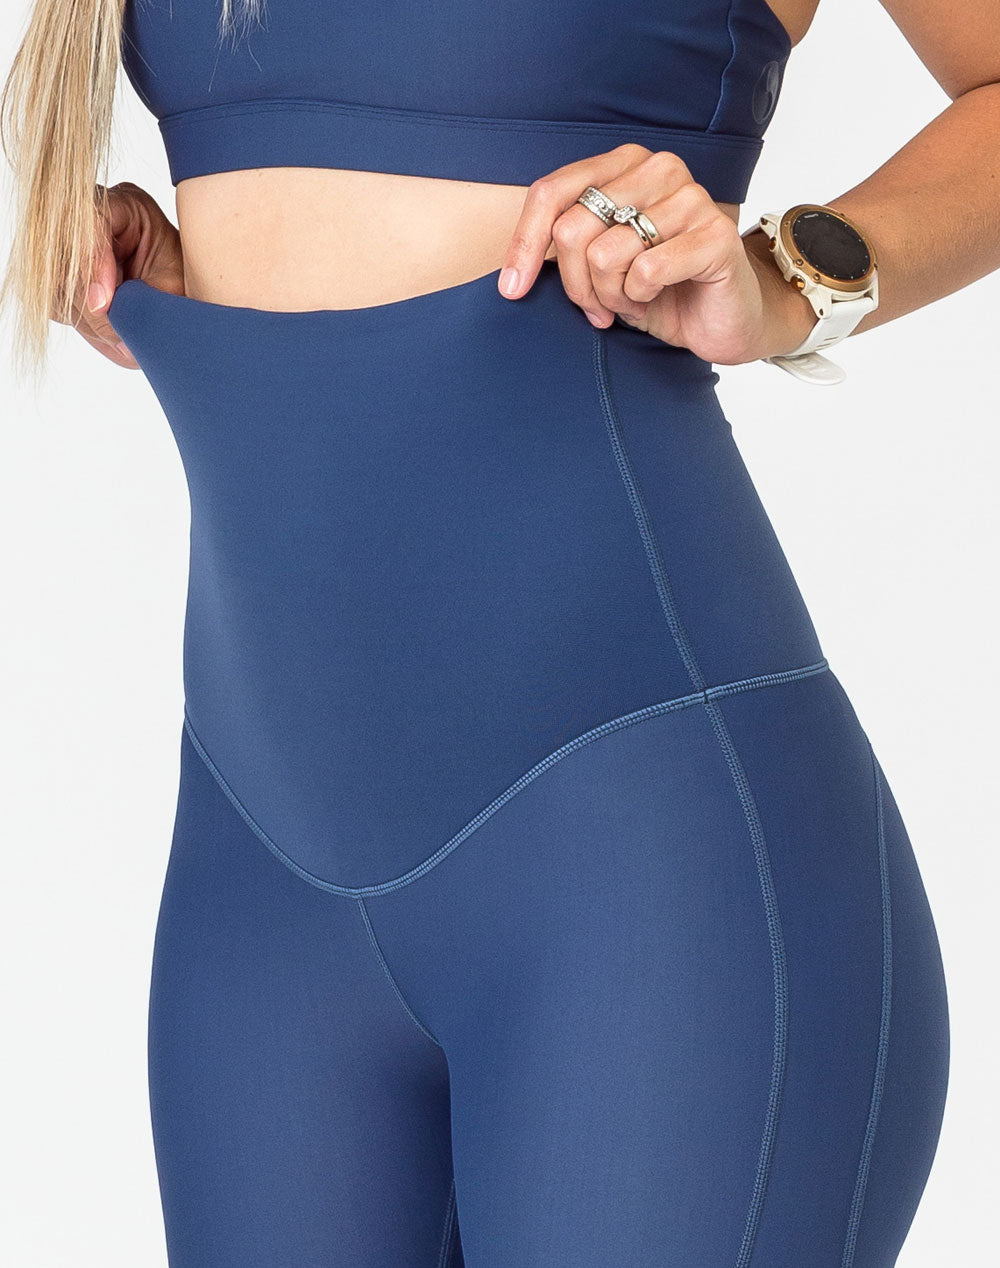 close up view of blue maternity leggings with an attached belly band that goes over the bump